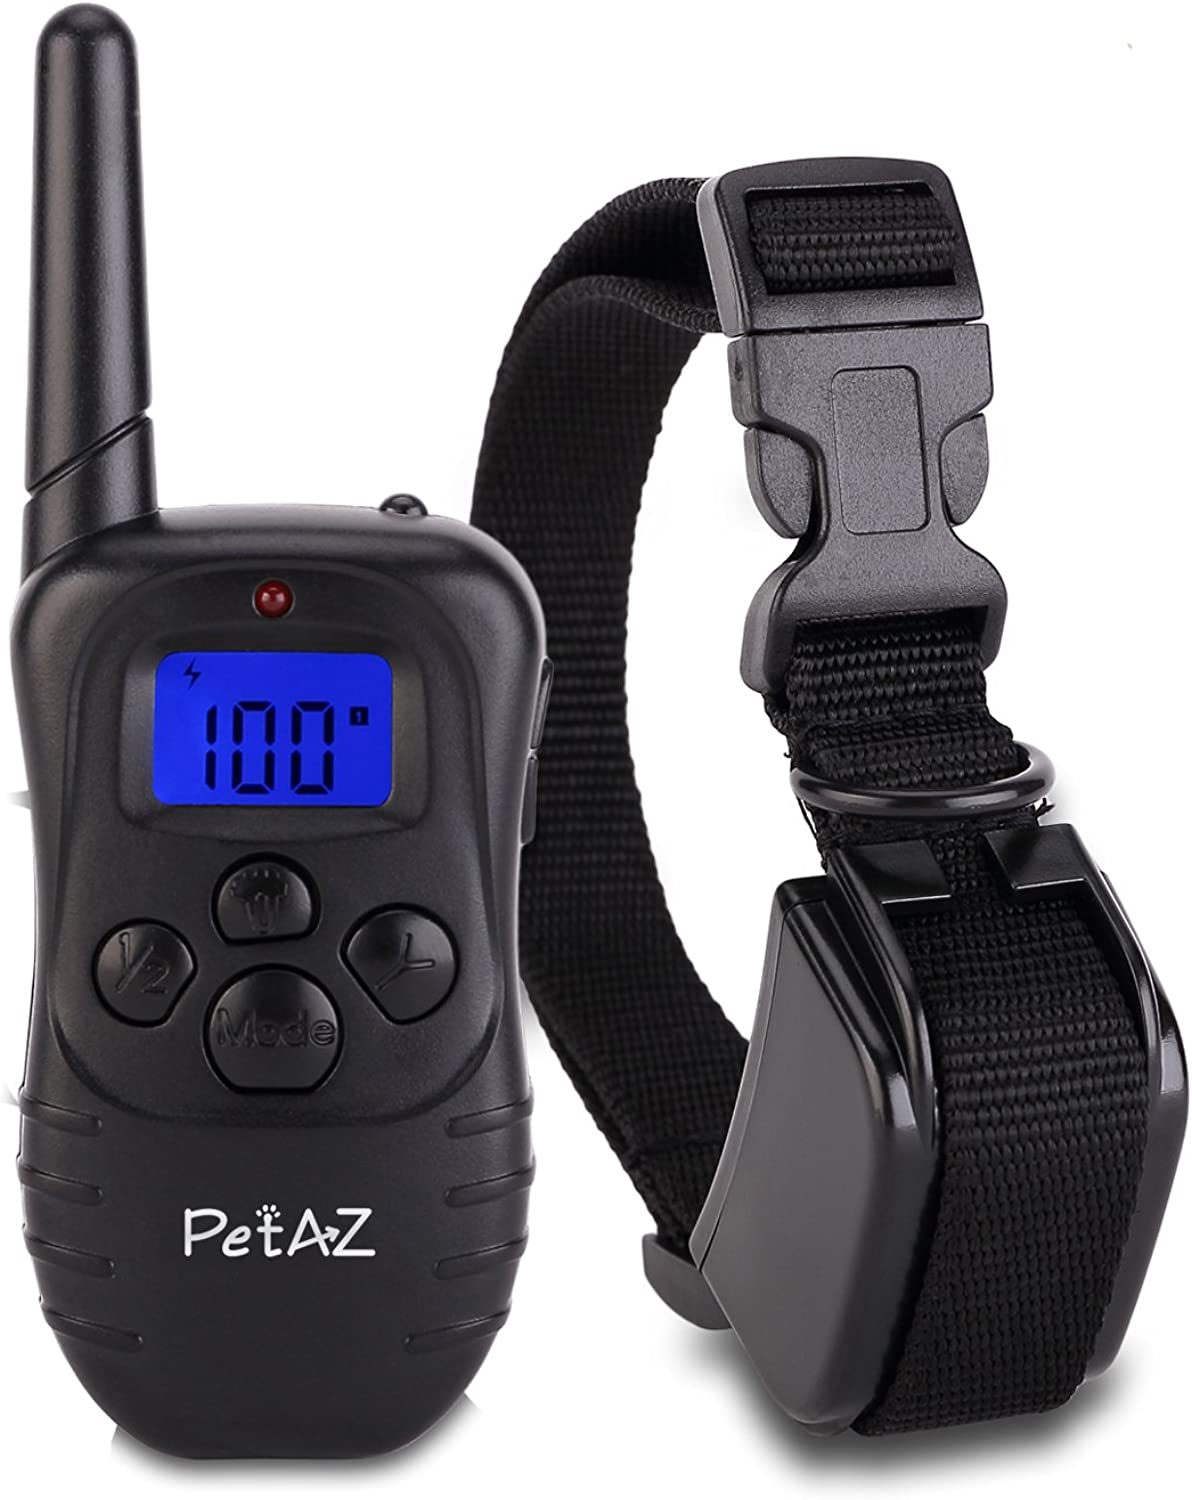 PetAZ Dog Training Collar With Remote Rechargeable & Rainproof LCD Screen 330 Yard Beep Vibration Shock Electric Train Collars For Small,Medium,Large Pets&Dogs